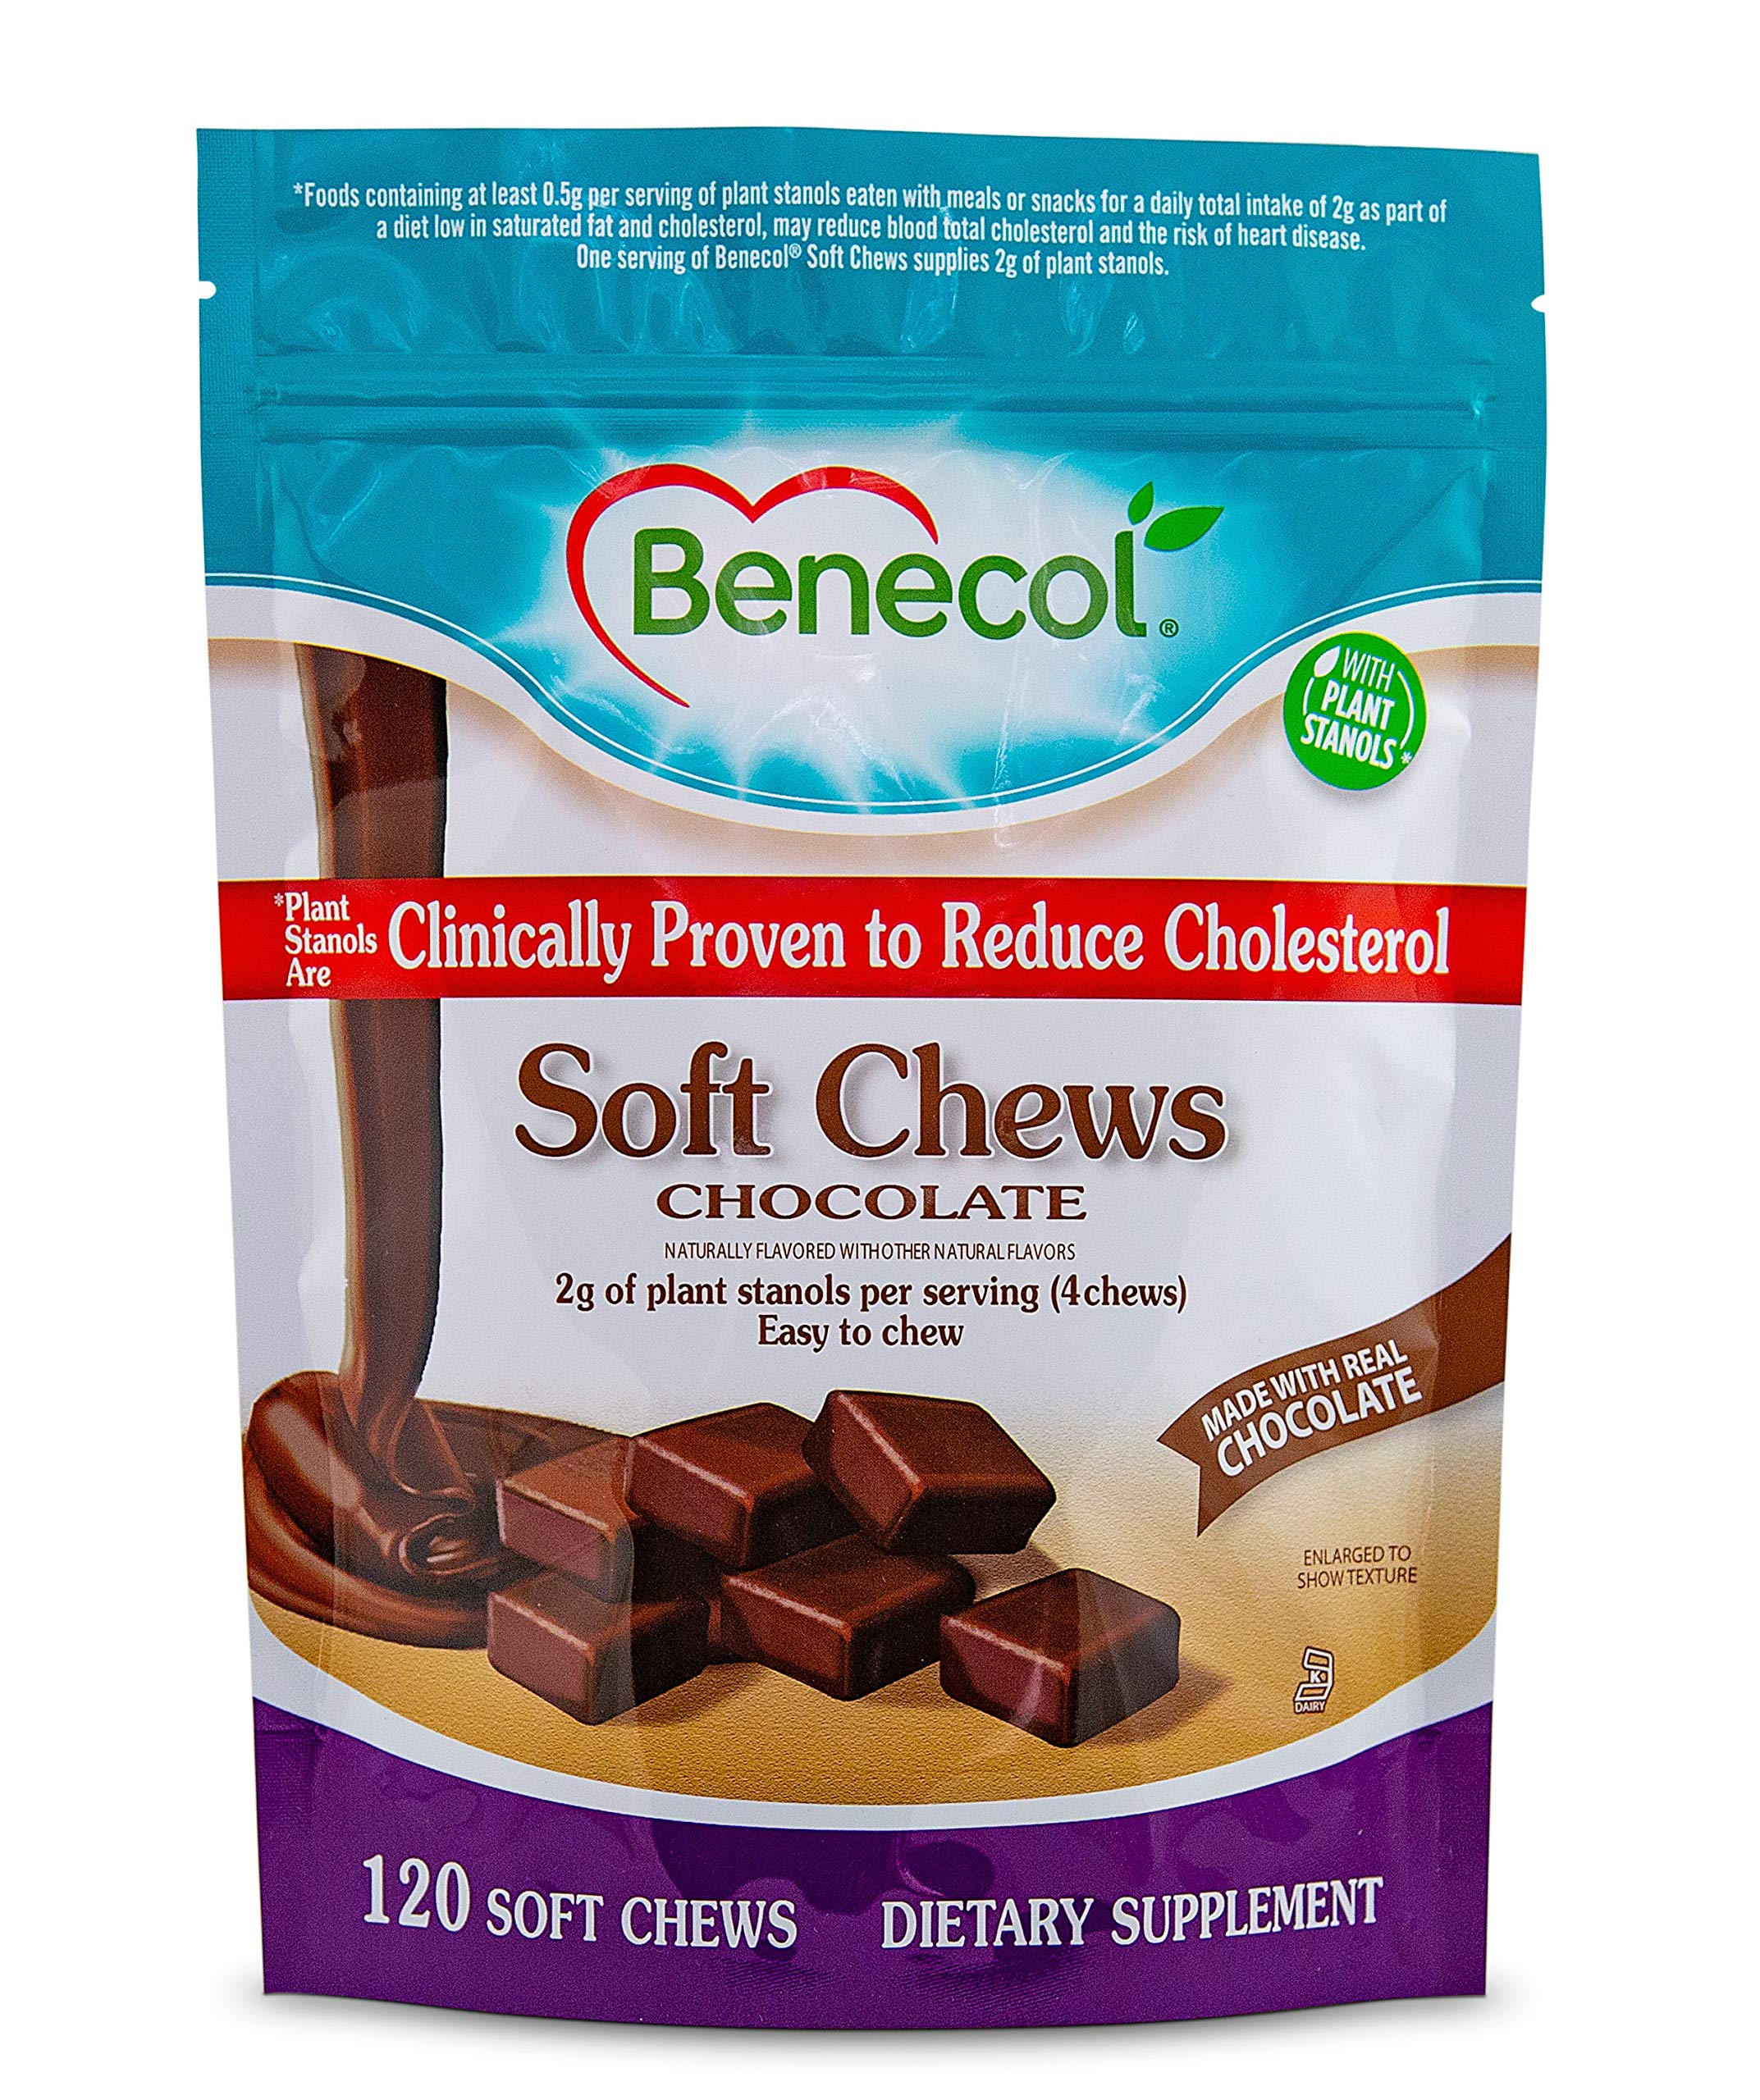 Benecol® Soft Chews - Dietary Supplement Made with Cholesterol-Lowering Plant Stanols, which are Clinically Proven to Reduce Total & LDL Cholesterol (120 Chocolate Chews)